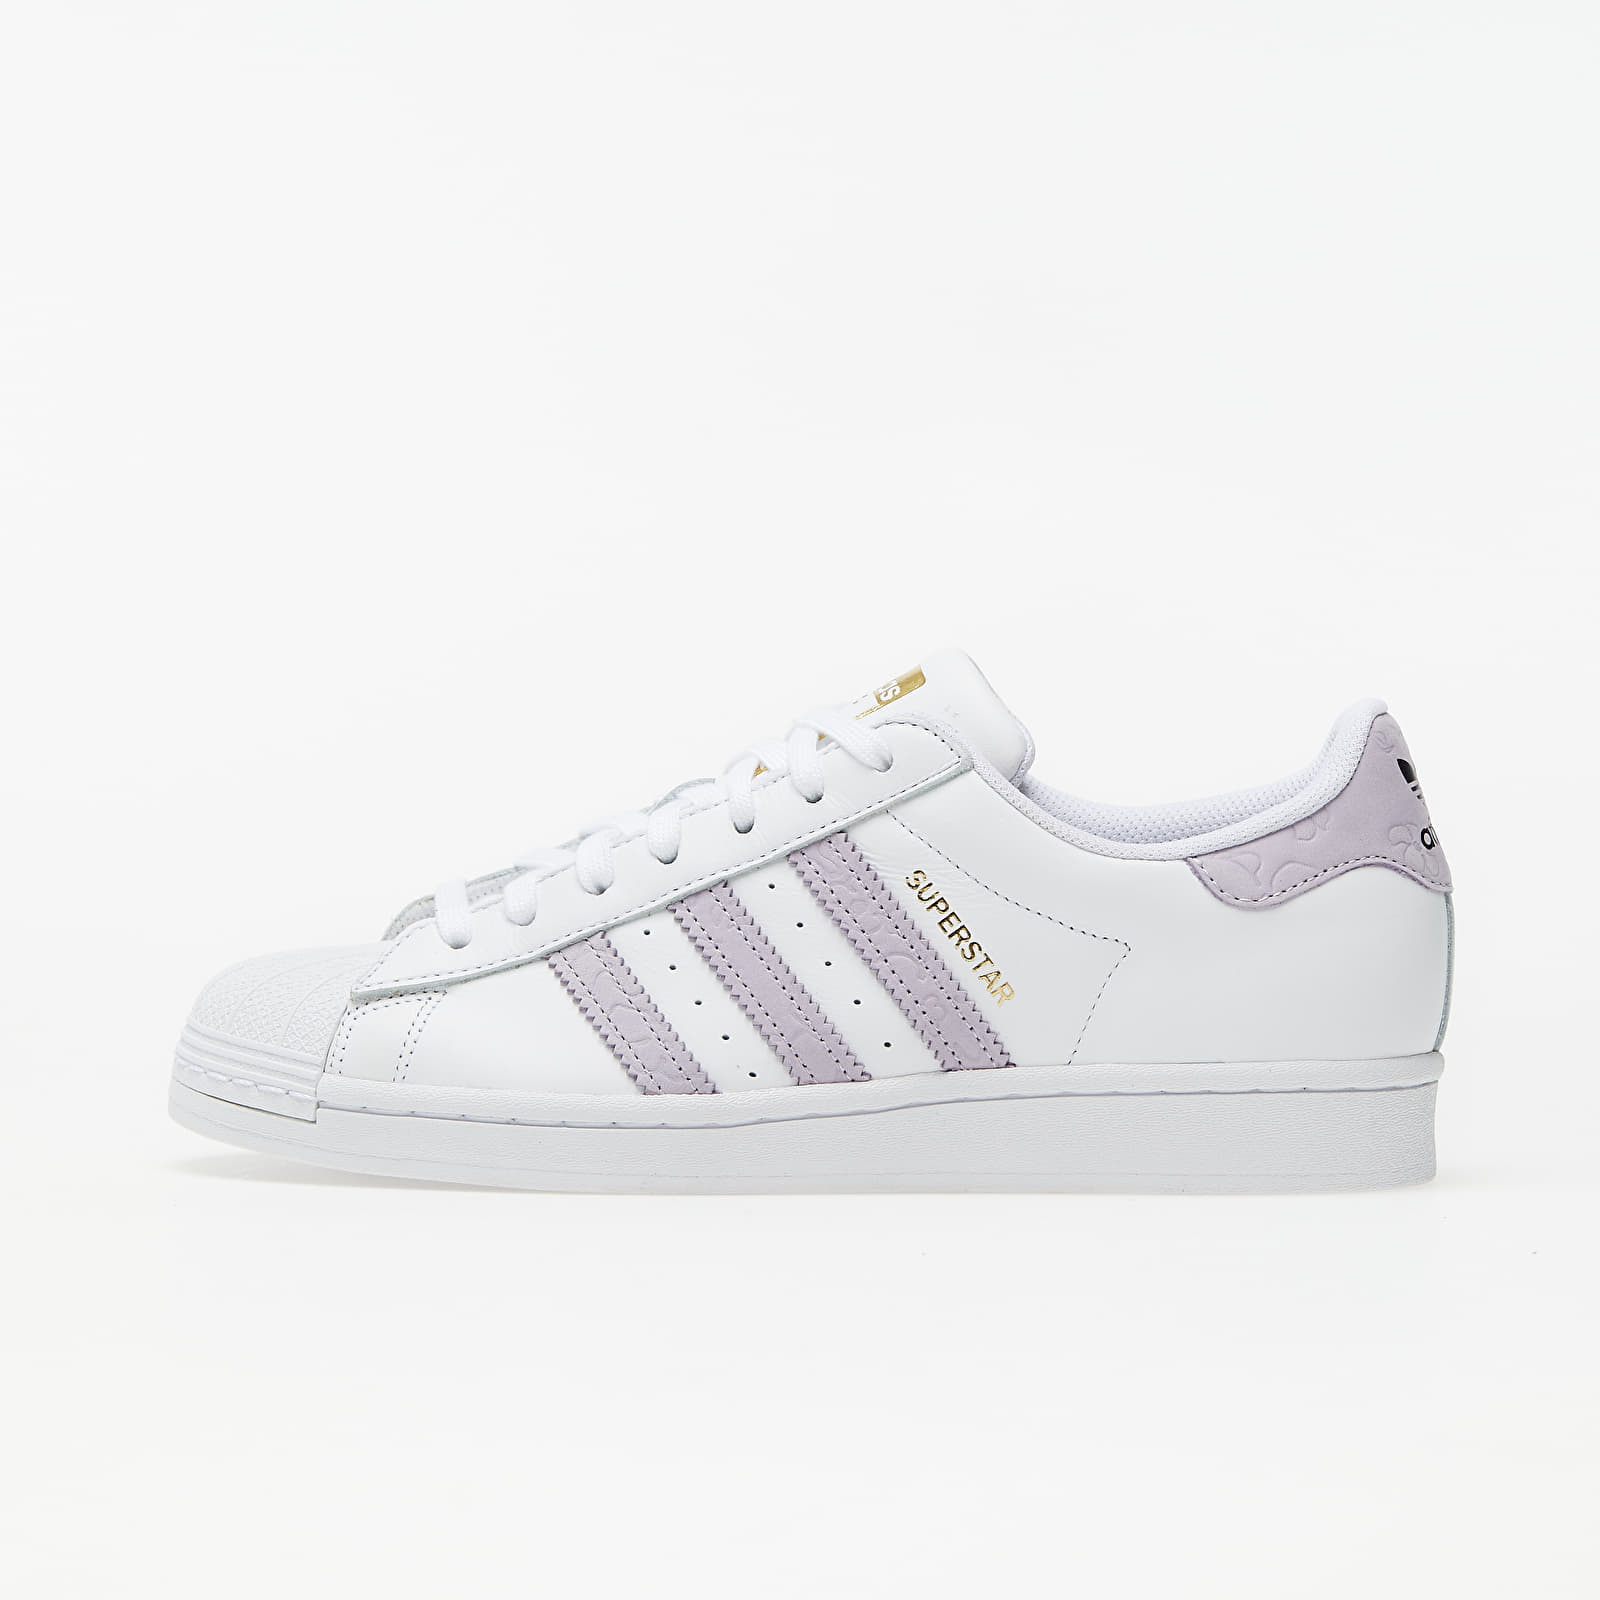 Женская обувь adidas Superstar W Ftw White/ Core Black/ Ftw White